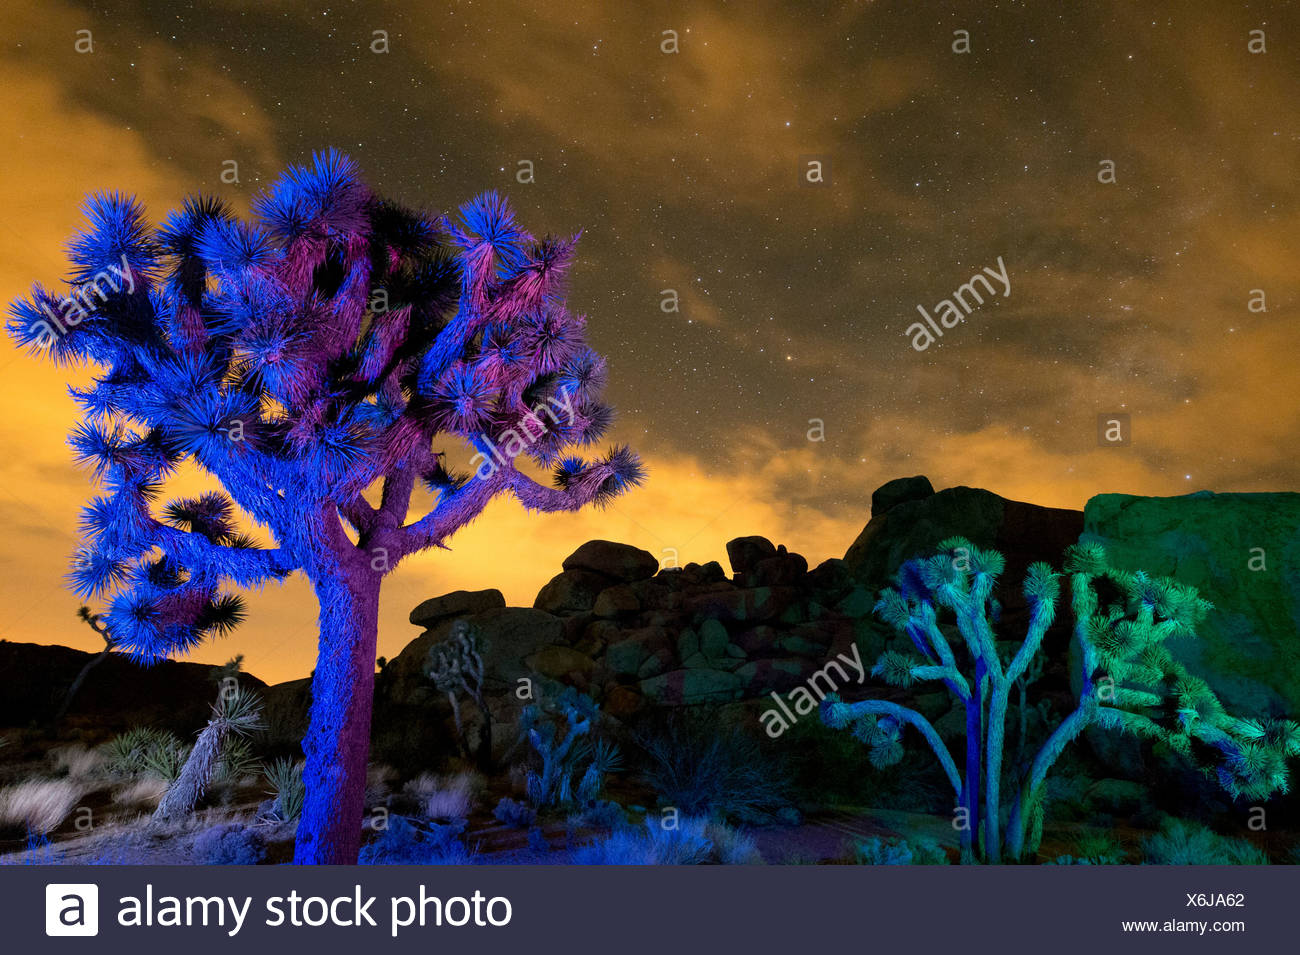 Colorful lights on Joshua Trees at night, Joshua Tree National Park, California, USA - Stock Image